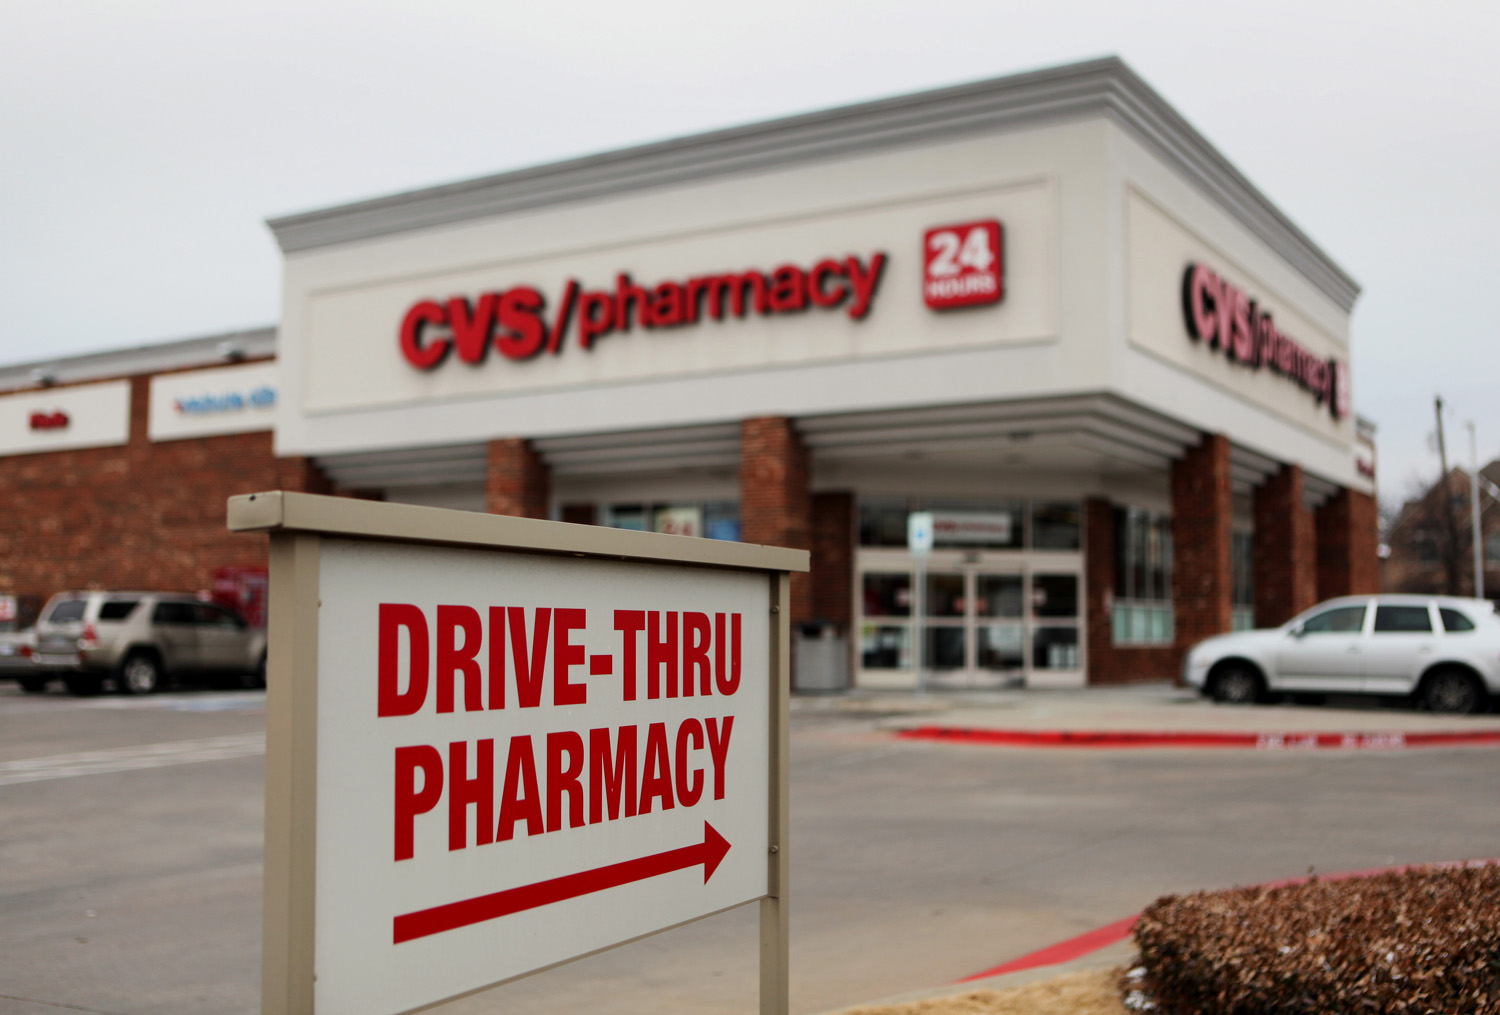 Stocks rose for CVS less than a week after announcing they would not be selling tobacco products anymore.